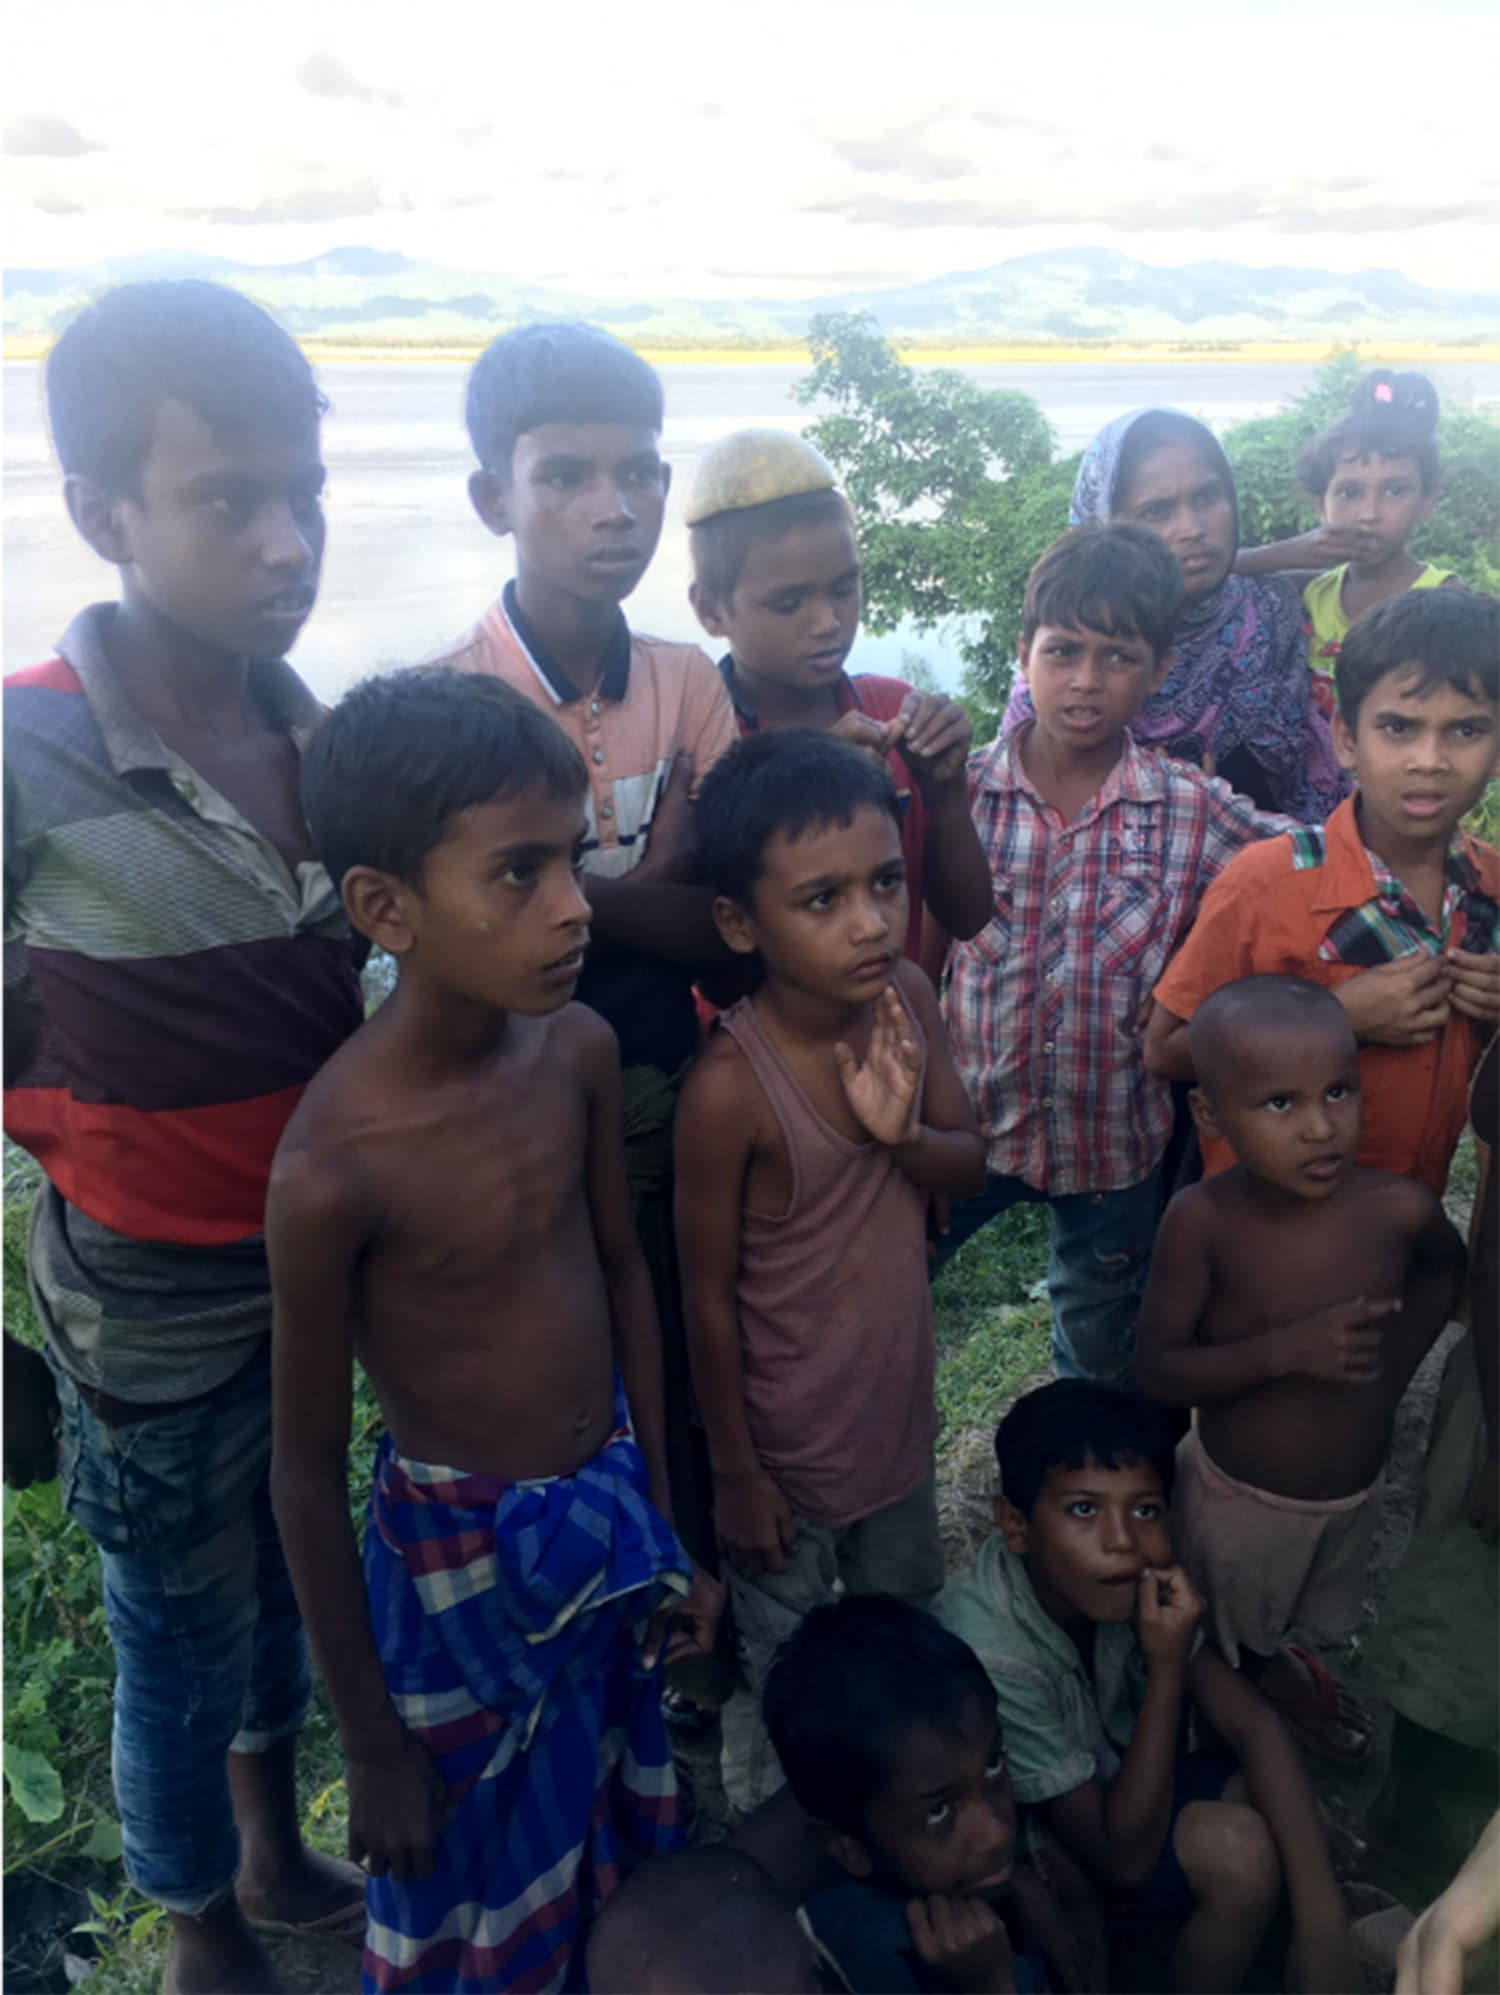 These children just crossed the Naf River to Bangladesh a few hours prior to this picture being taken. Myanmar can be seen in the background.